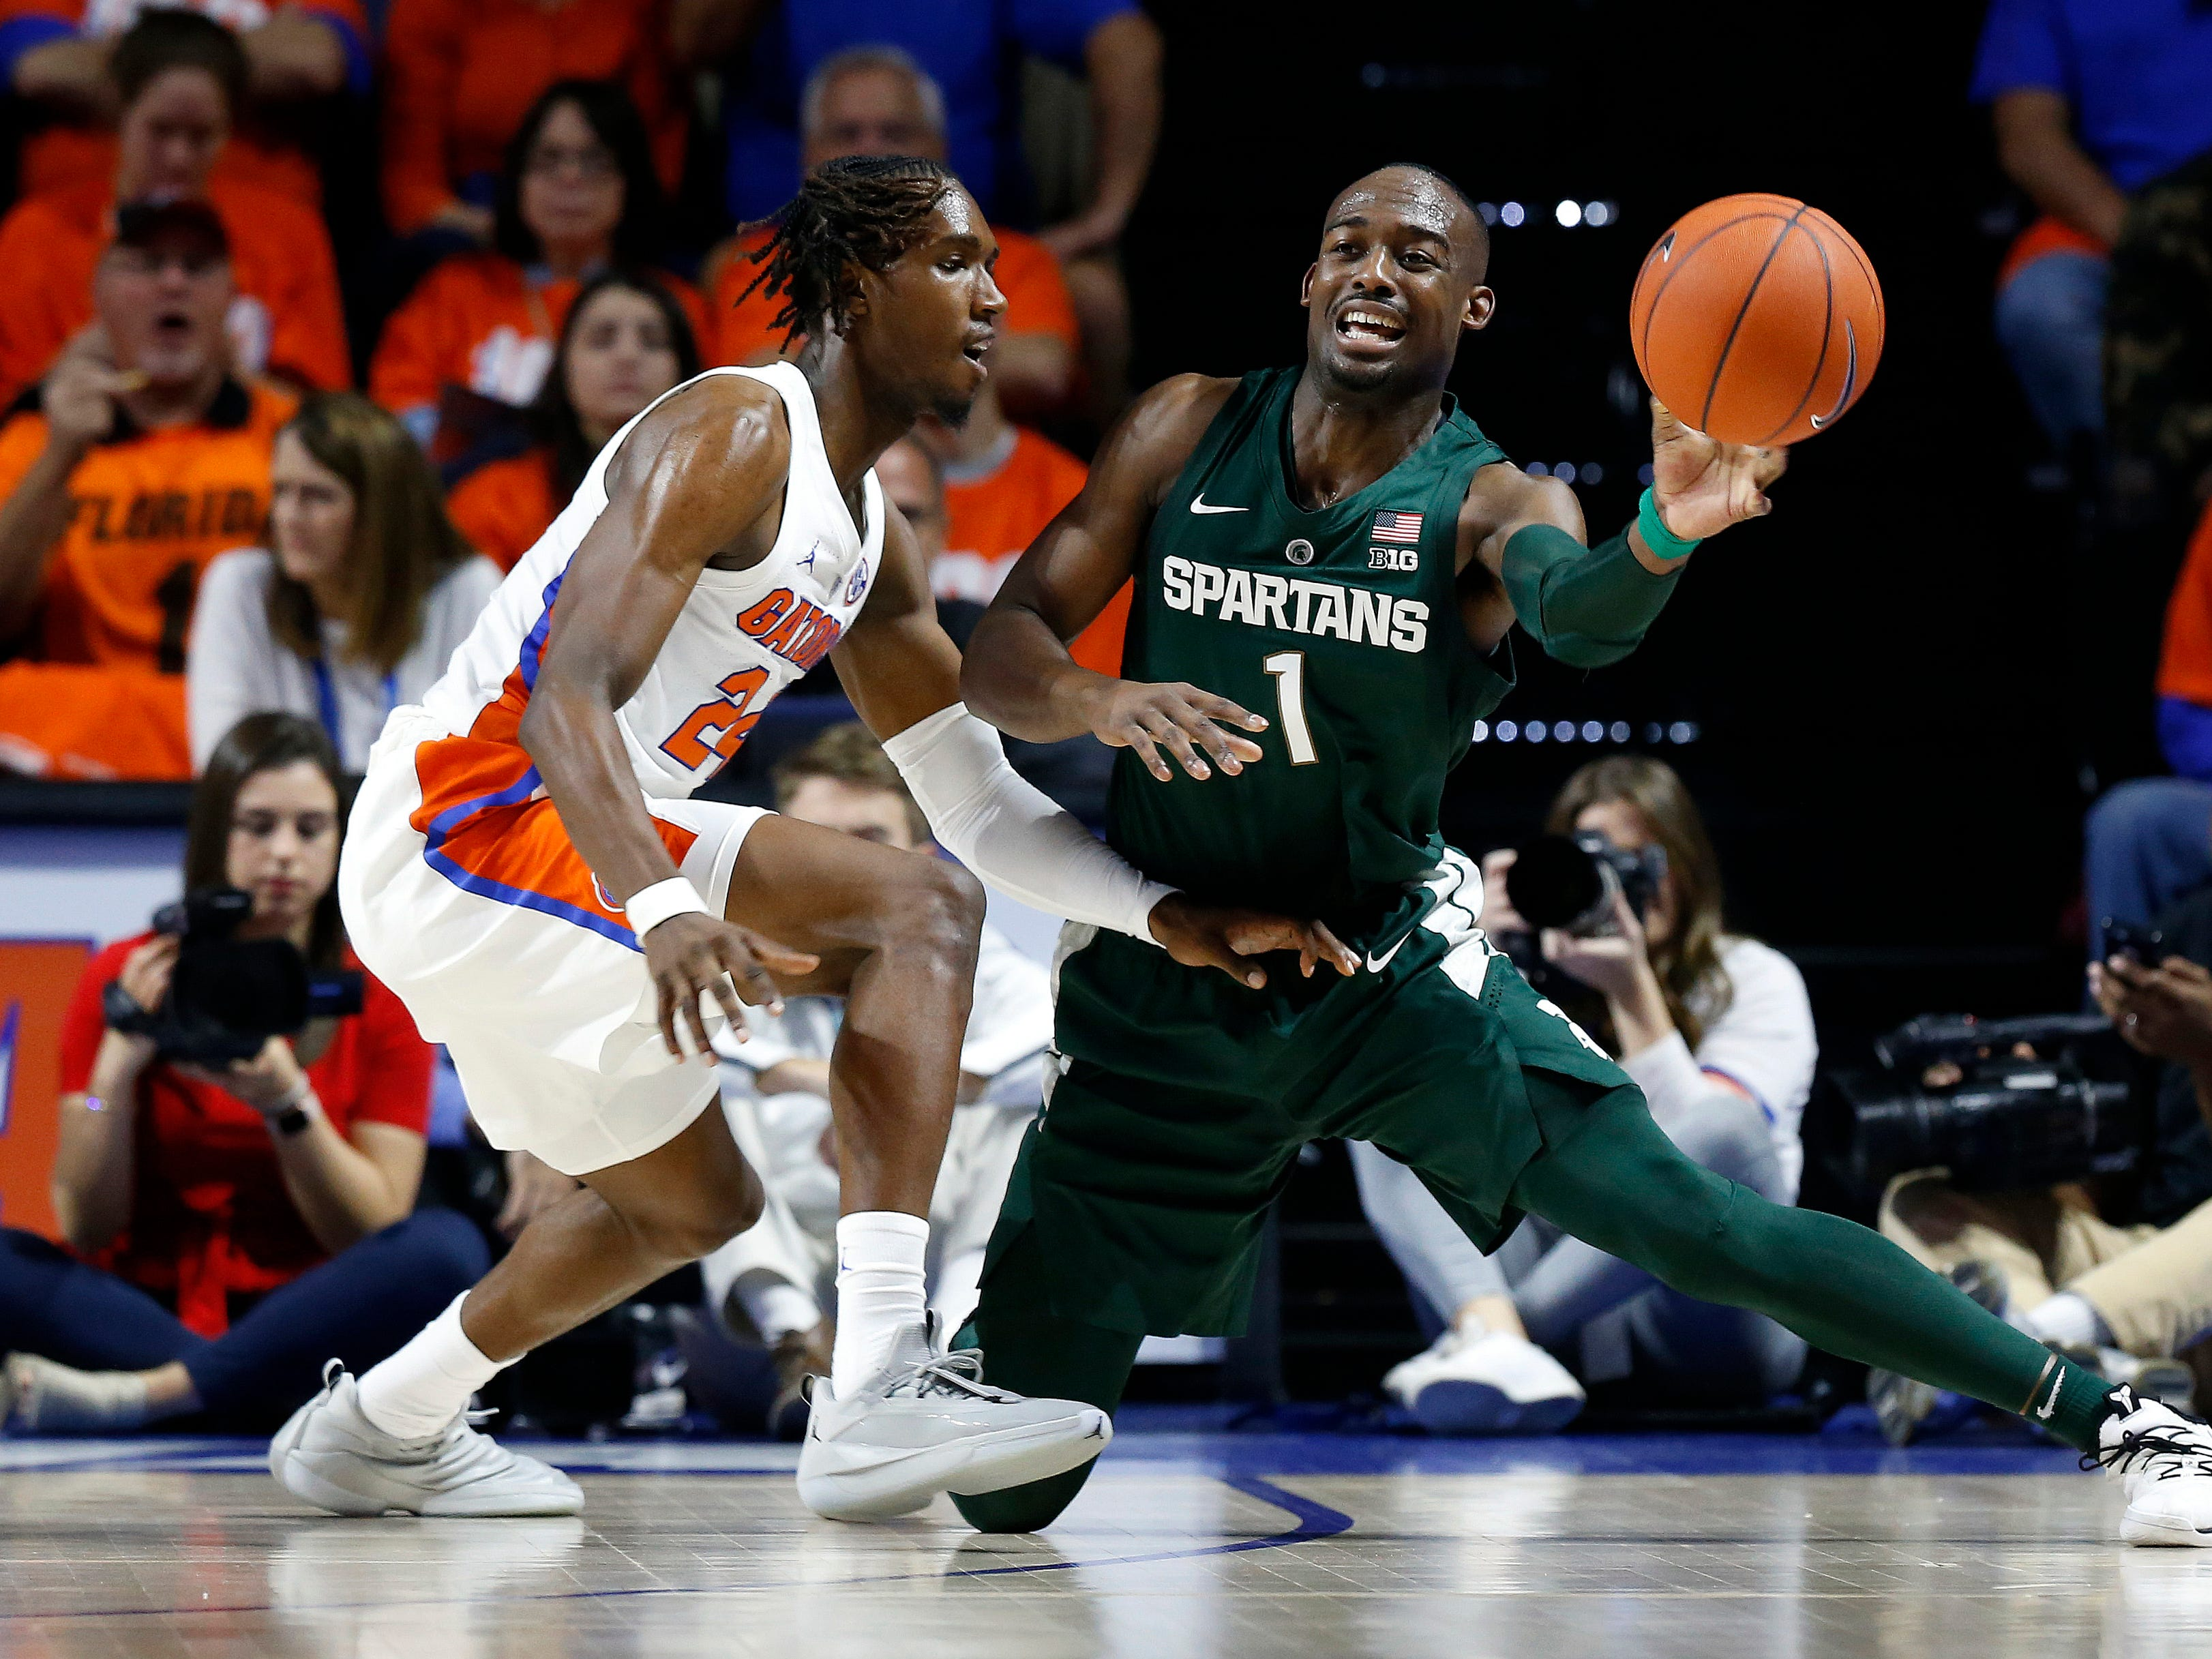 Michigan State Spartans guard Joshua Langford (1) passes as Florida Gators guard Deaundrae Ballard (24) defends during the first half at Exactech Arena.